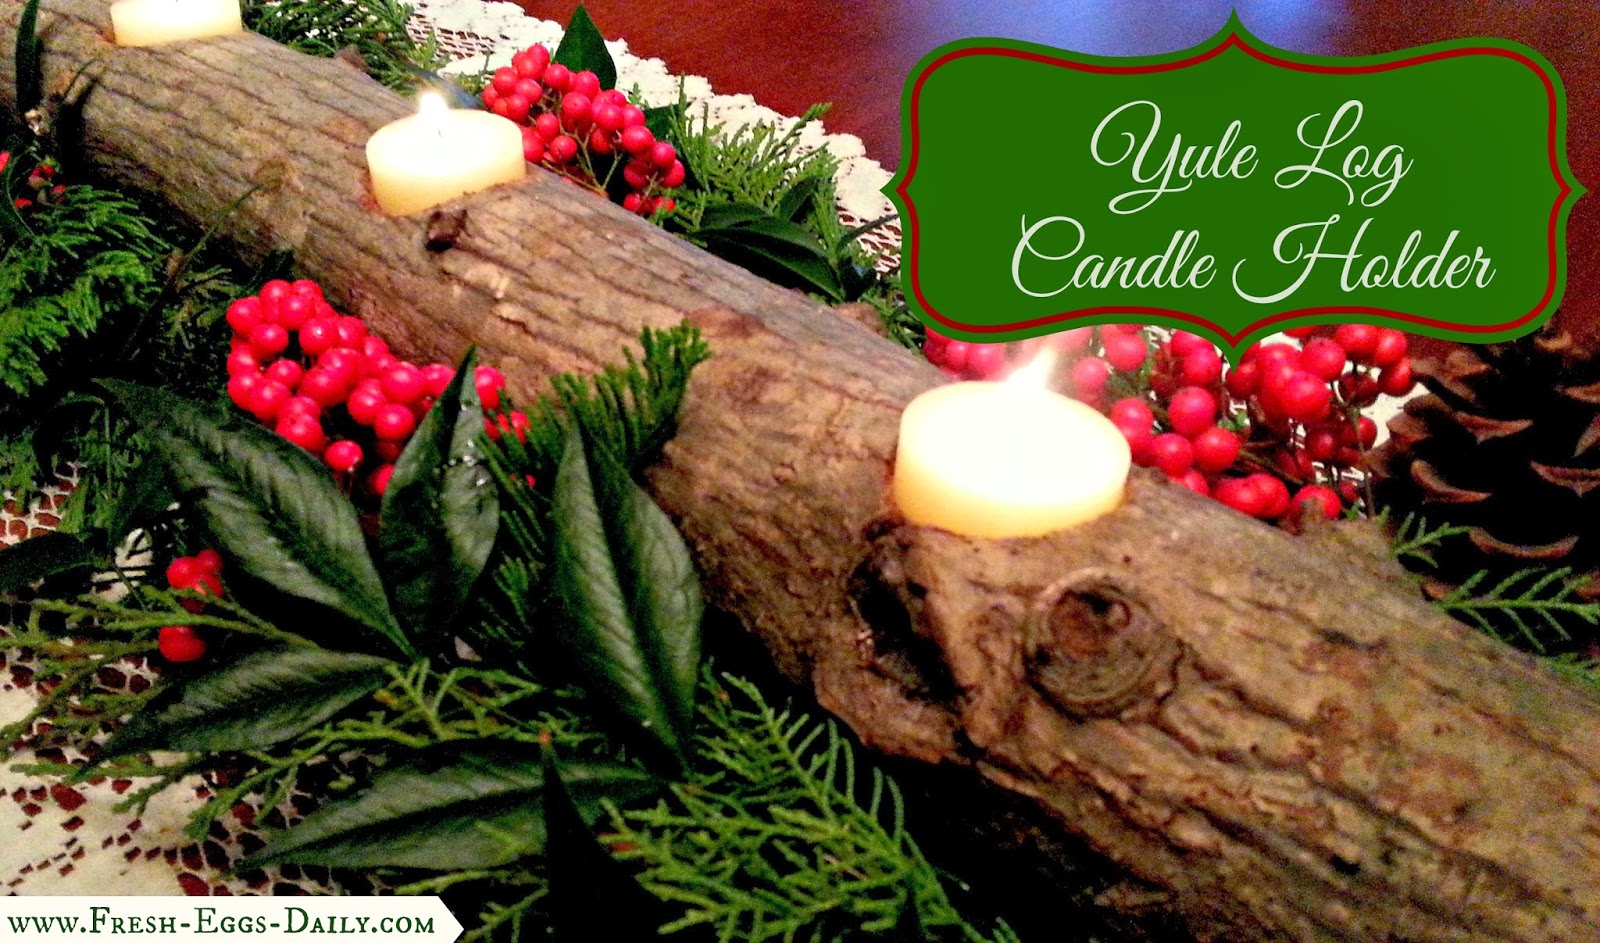 i love rustic christmas decorations and part of our decorating always involves gathering evergreen boughs pine cones and berries from our yard and the - Christmas Log Candle Holder Decorations